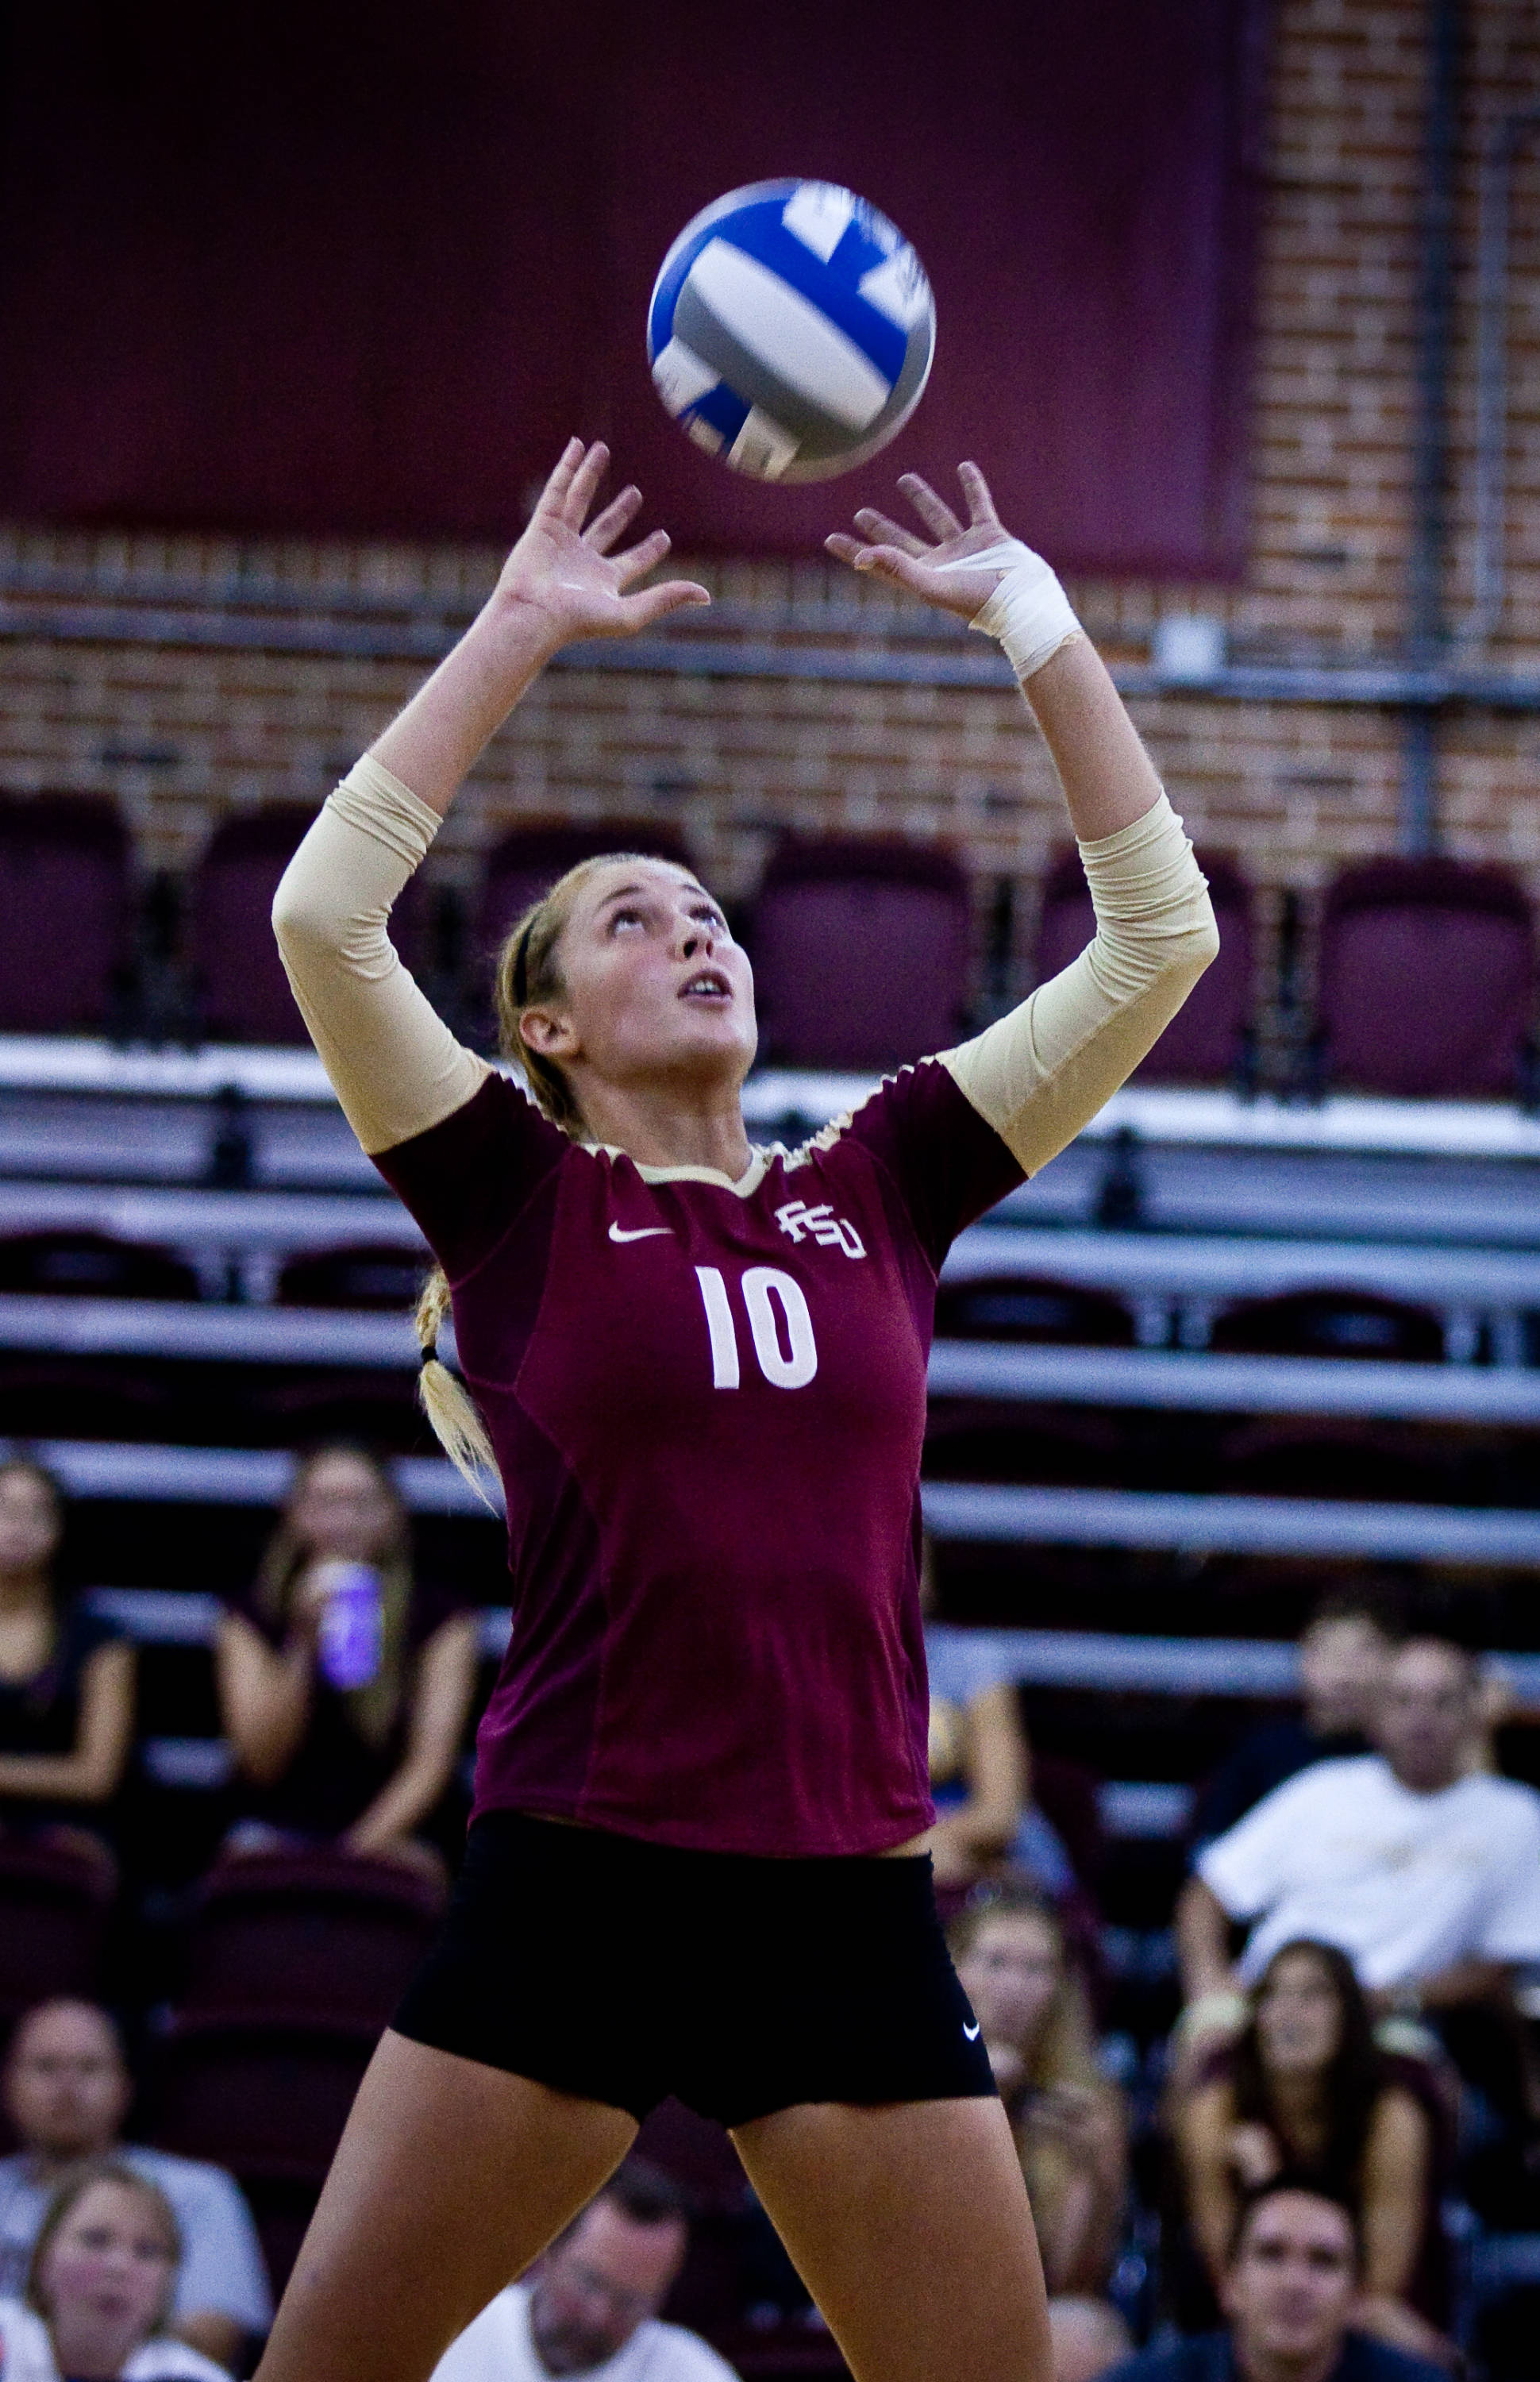 Freshman Sarah Wickstrom (10) tries another set. She finished with 28 assists at the Garnet-Gold Scrimmage.